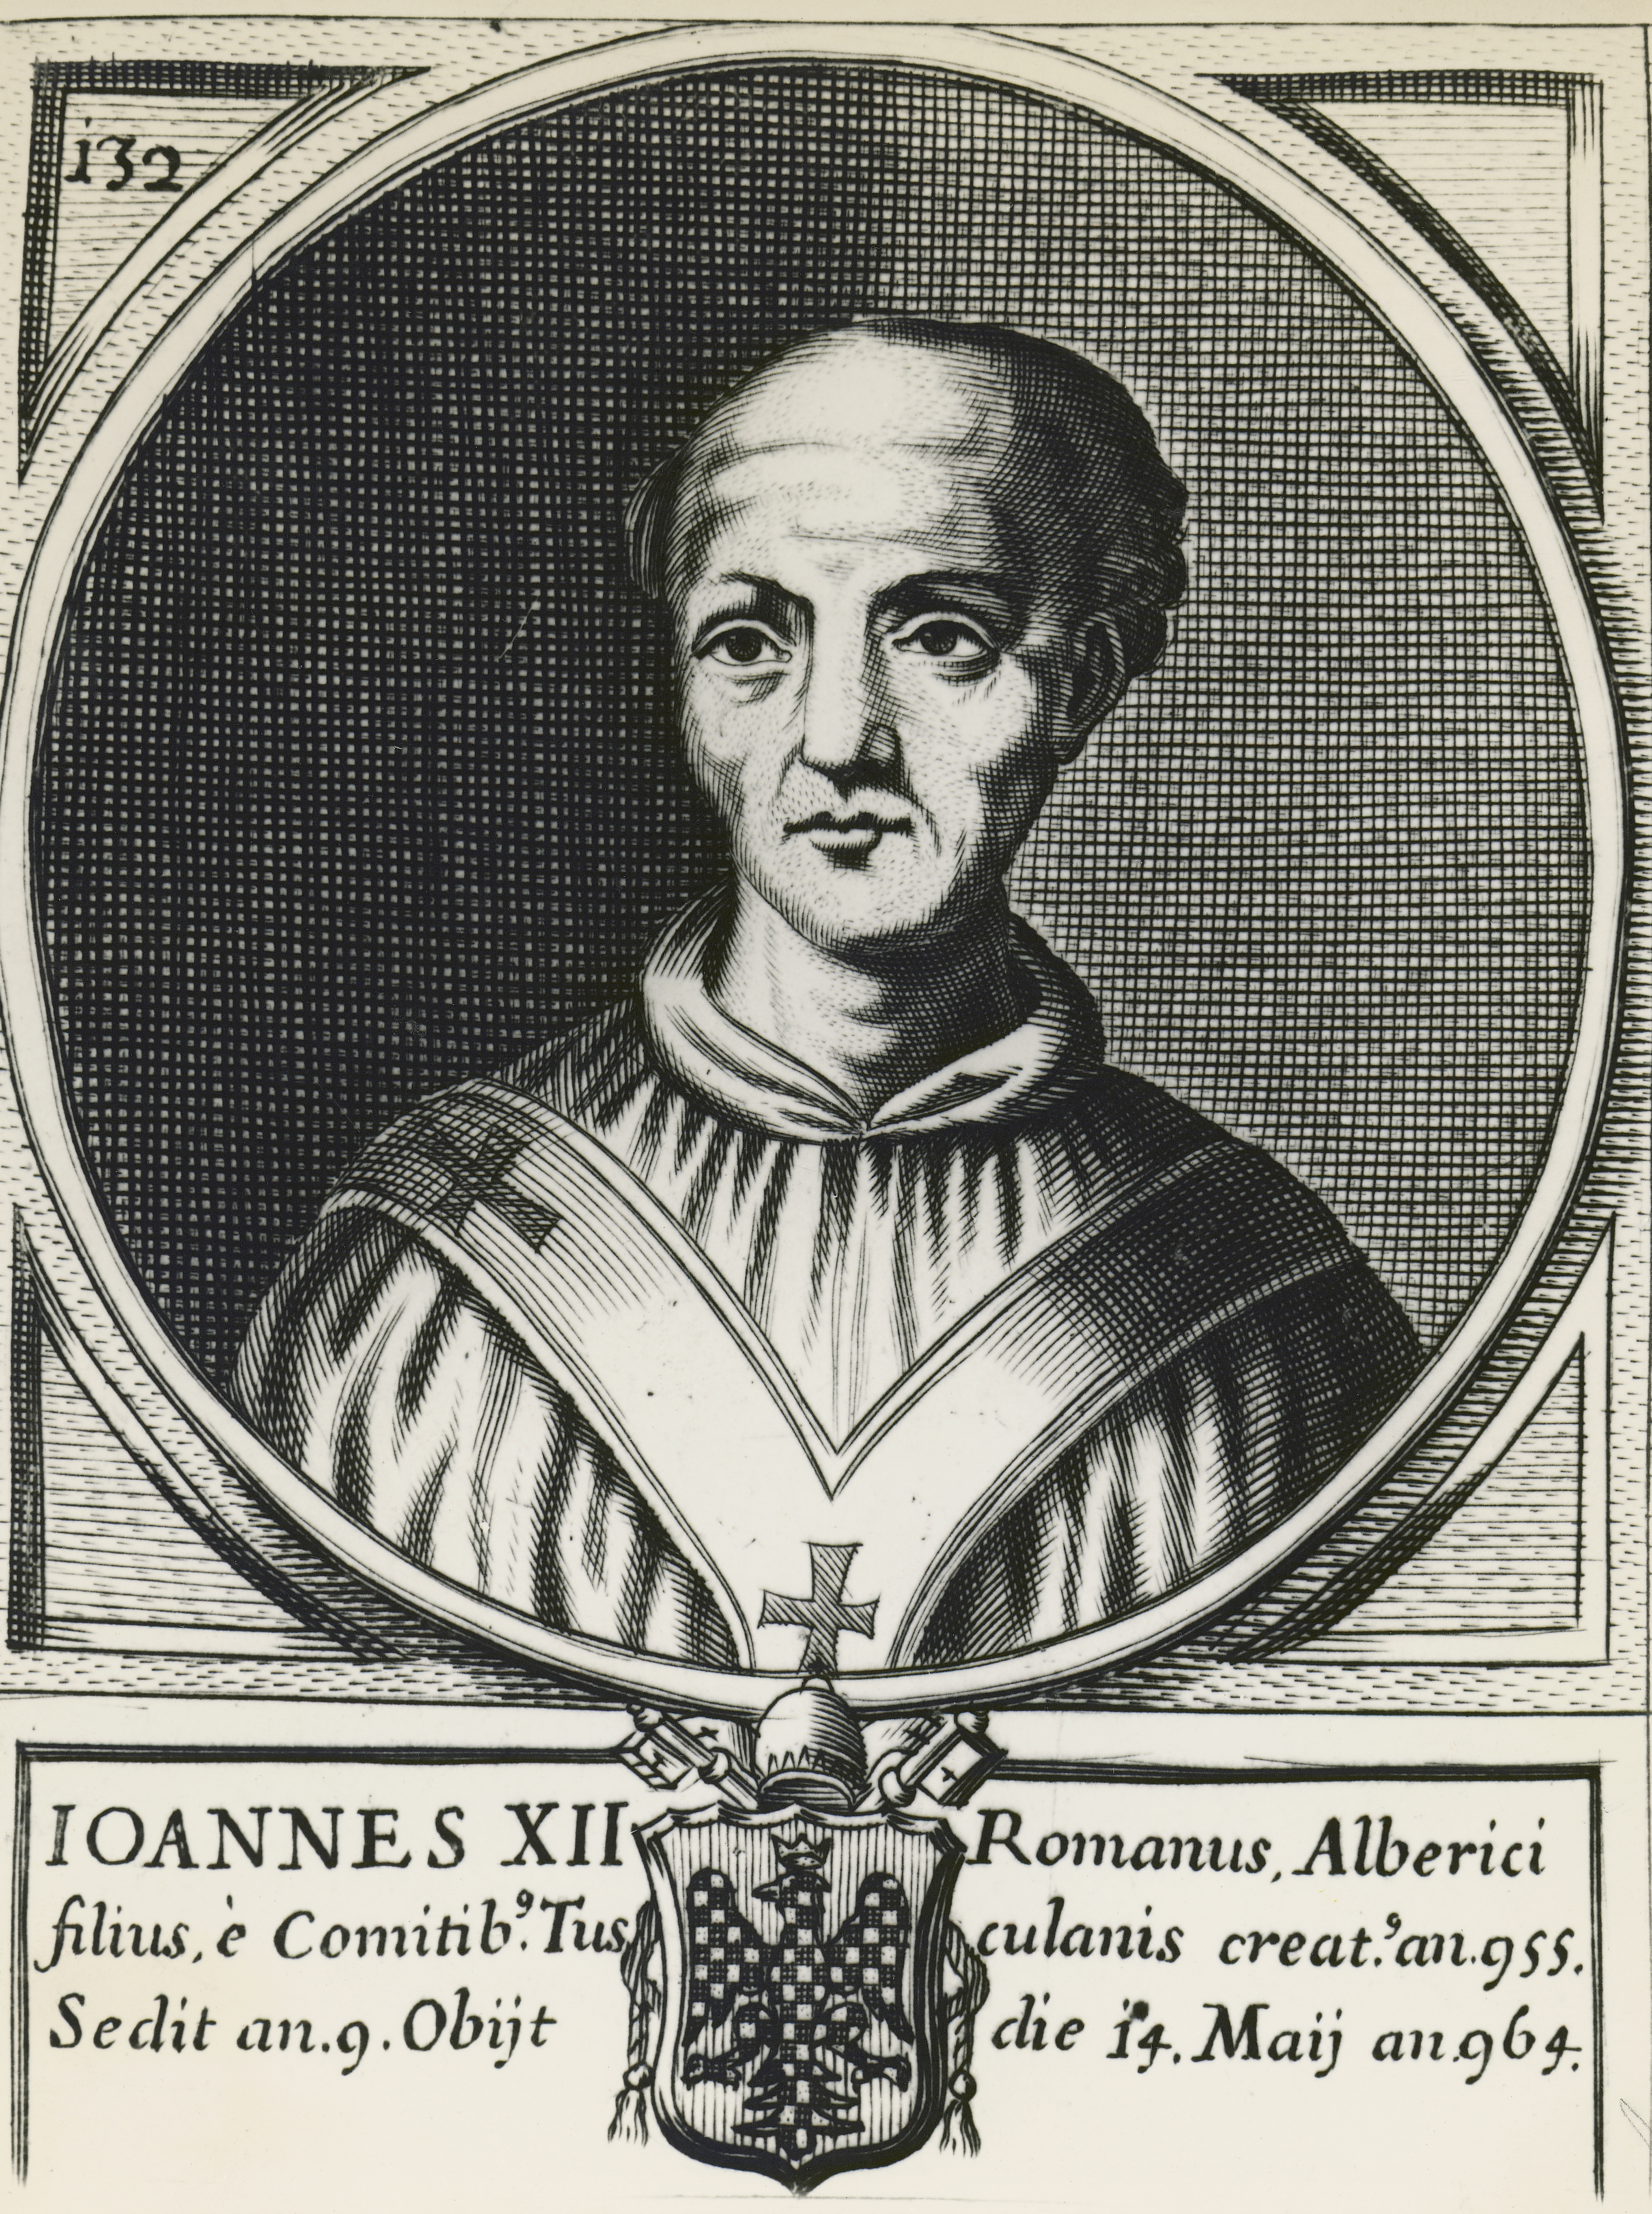 ITALY - DECEMBER 16: Portrait of Pope John XII, born Octavianus of Tusculum (937-964), engraving. Italy, 10th century. (Photo by DeAgostini/Getty Images)